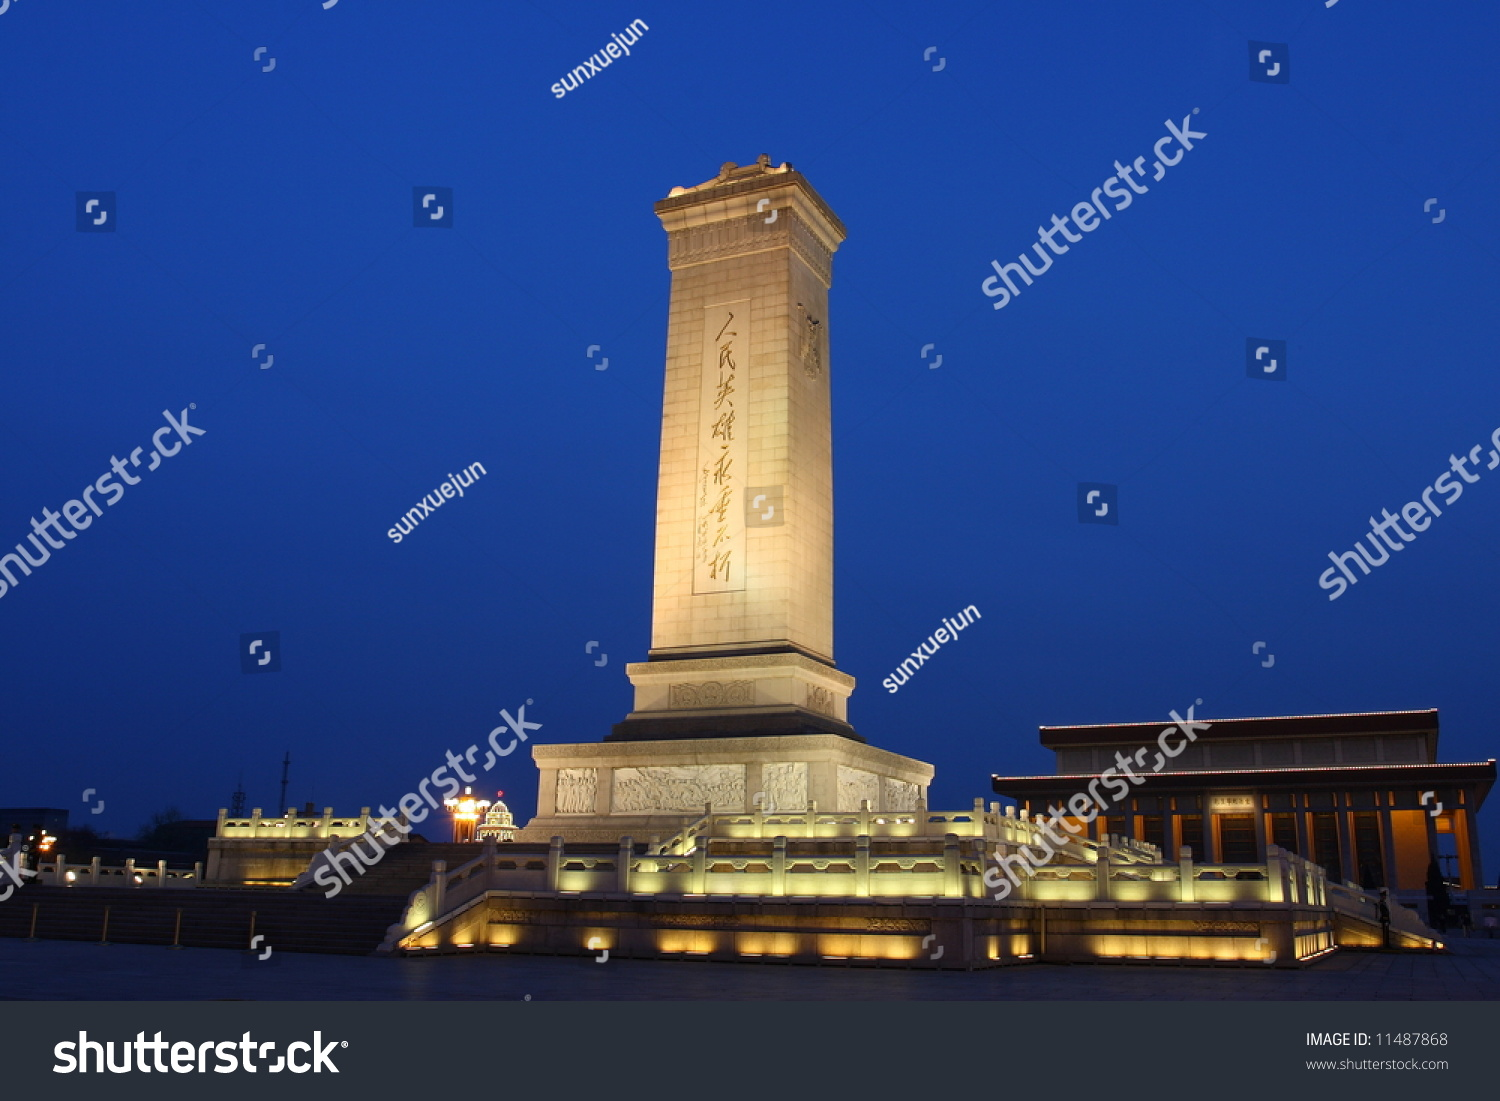 the monument to the peoples heroes Monument to the people's heroes - the monument to the people's heroes is a concrete structure in shanghai, china the structure is located at the confluence of the suzhou creek and the.